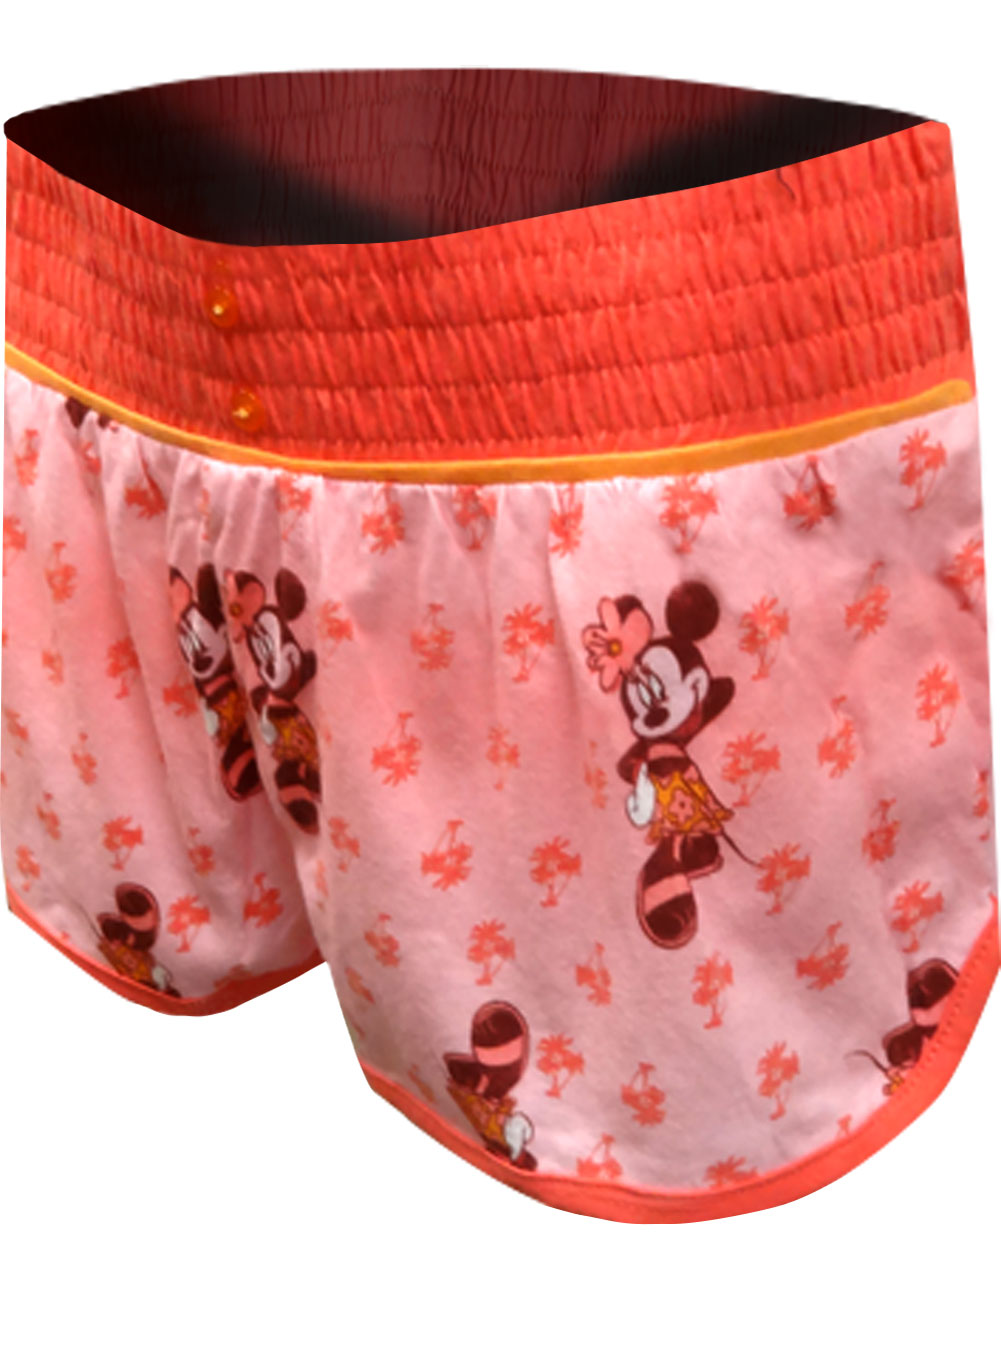 Minnie Mouse Island Beauty Coral Sleep Shorts for women